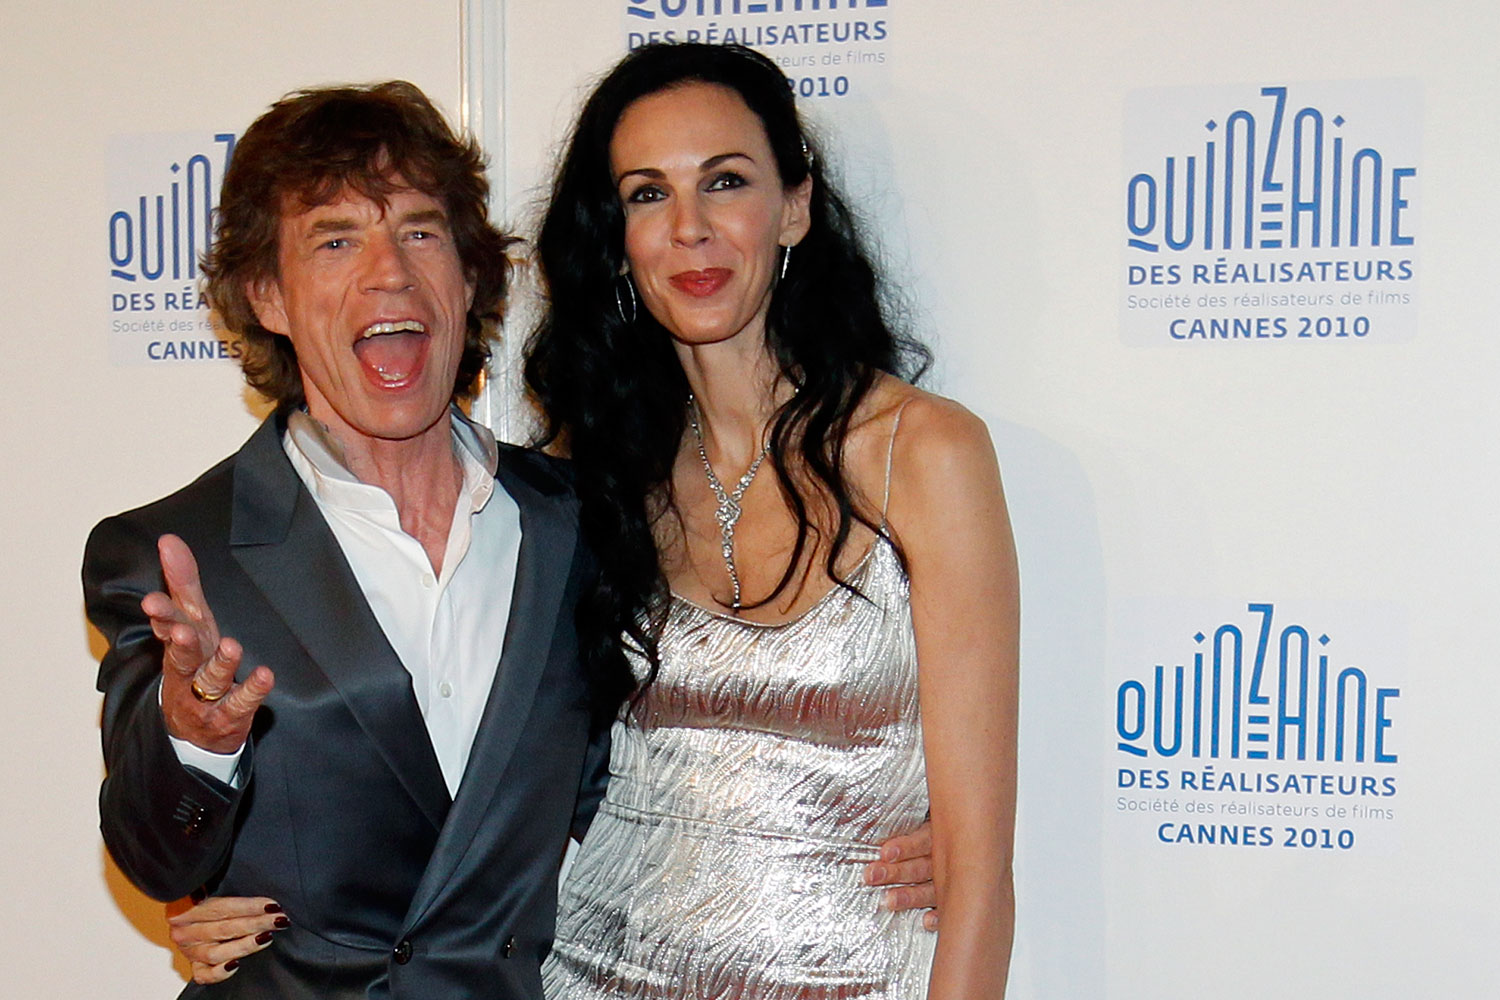 Rolling Stones lead singer Mick Jagger and fashion stylist L'Wren Scott arrive at the  Quinzaine des Realisateurs  at the 63rd Cannes Film Festival May 19, 2010.